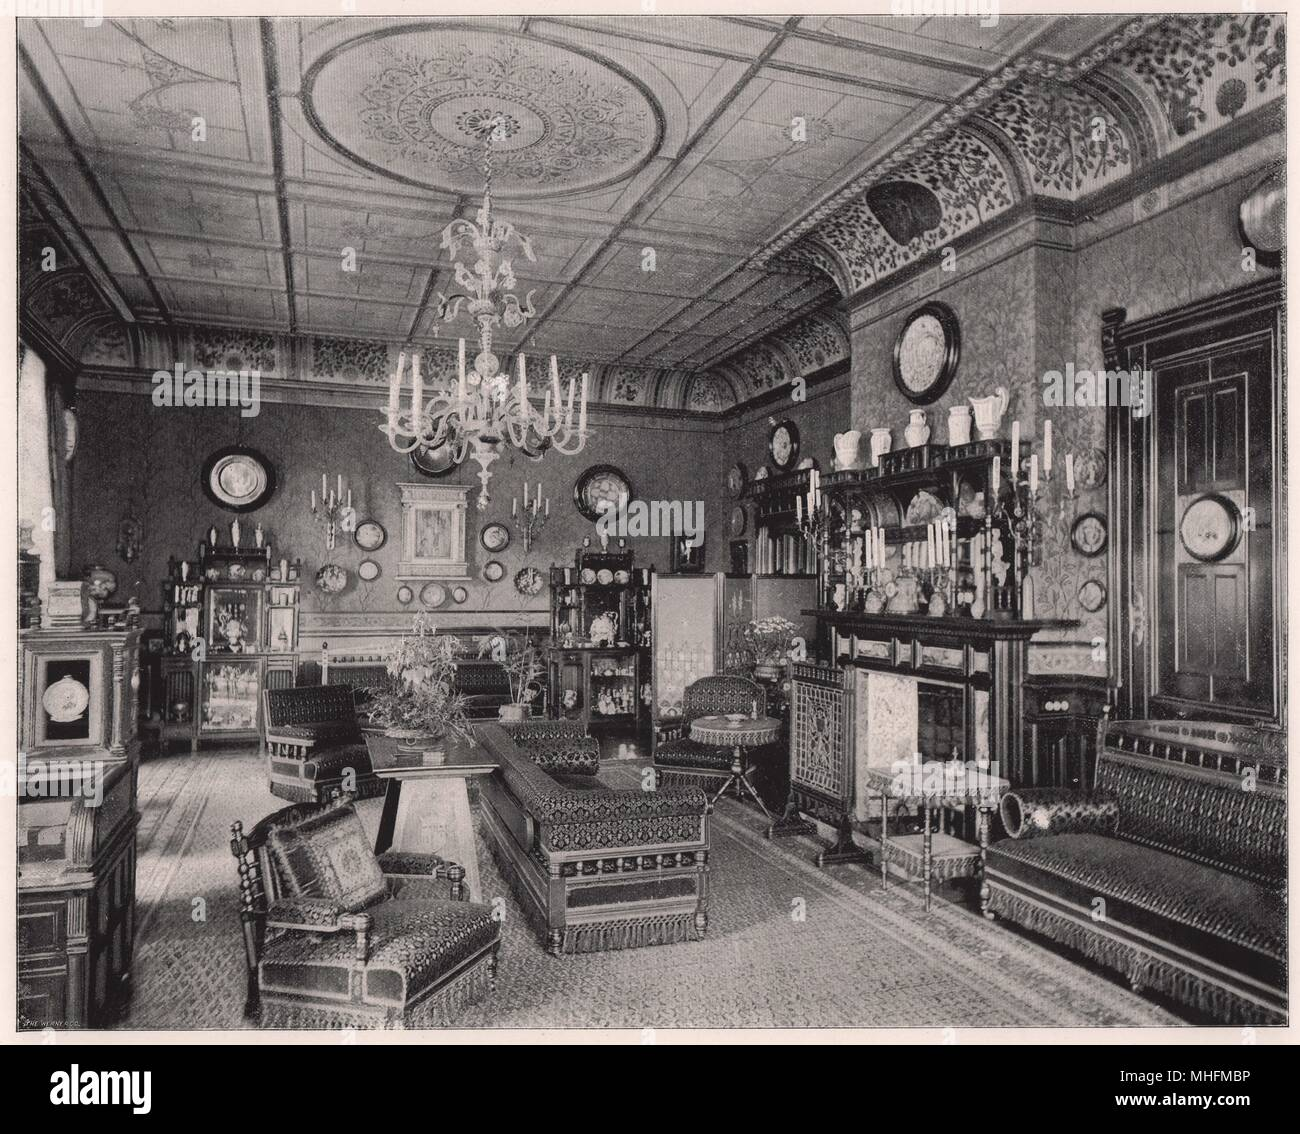 The Morning Room at Clarence House - After the principal festivities which took place at the Winter Palace in St. Petersburg in… Stock Photo